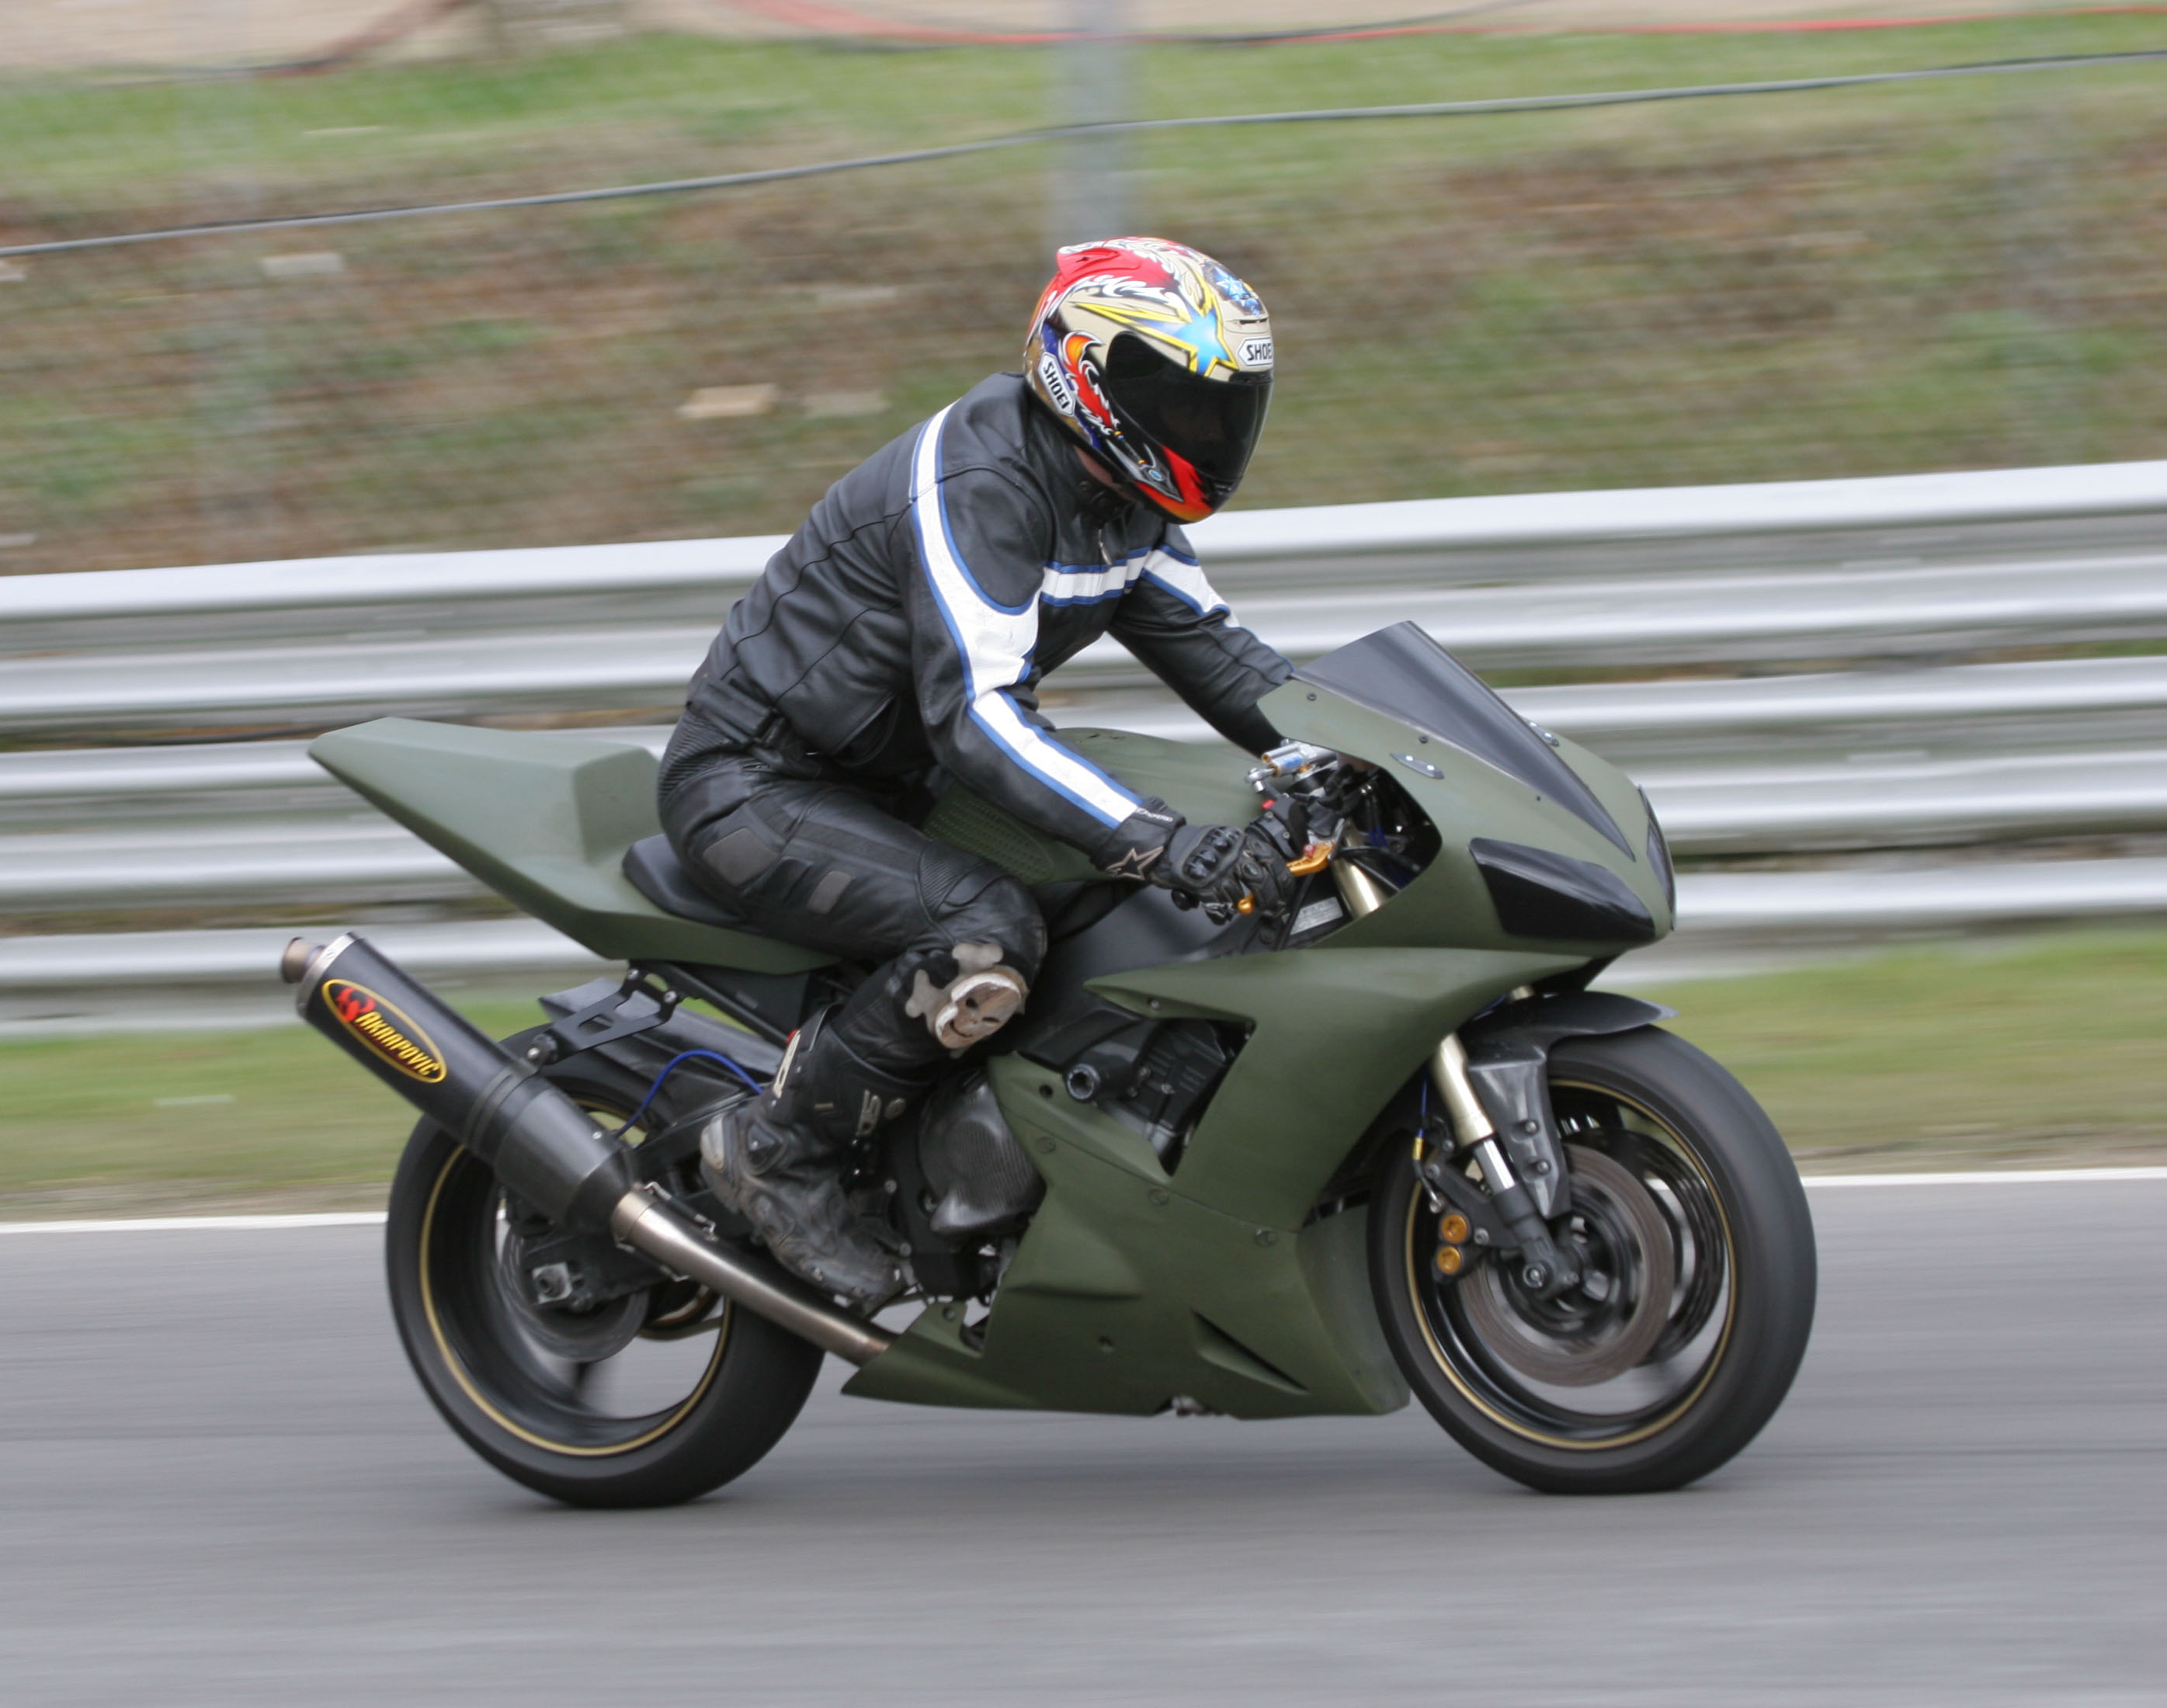 Yamaha Motorcycle Prices In India